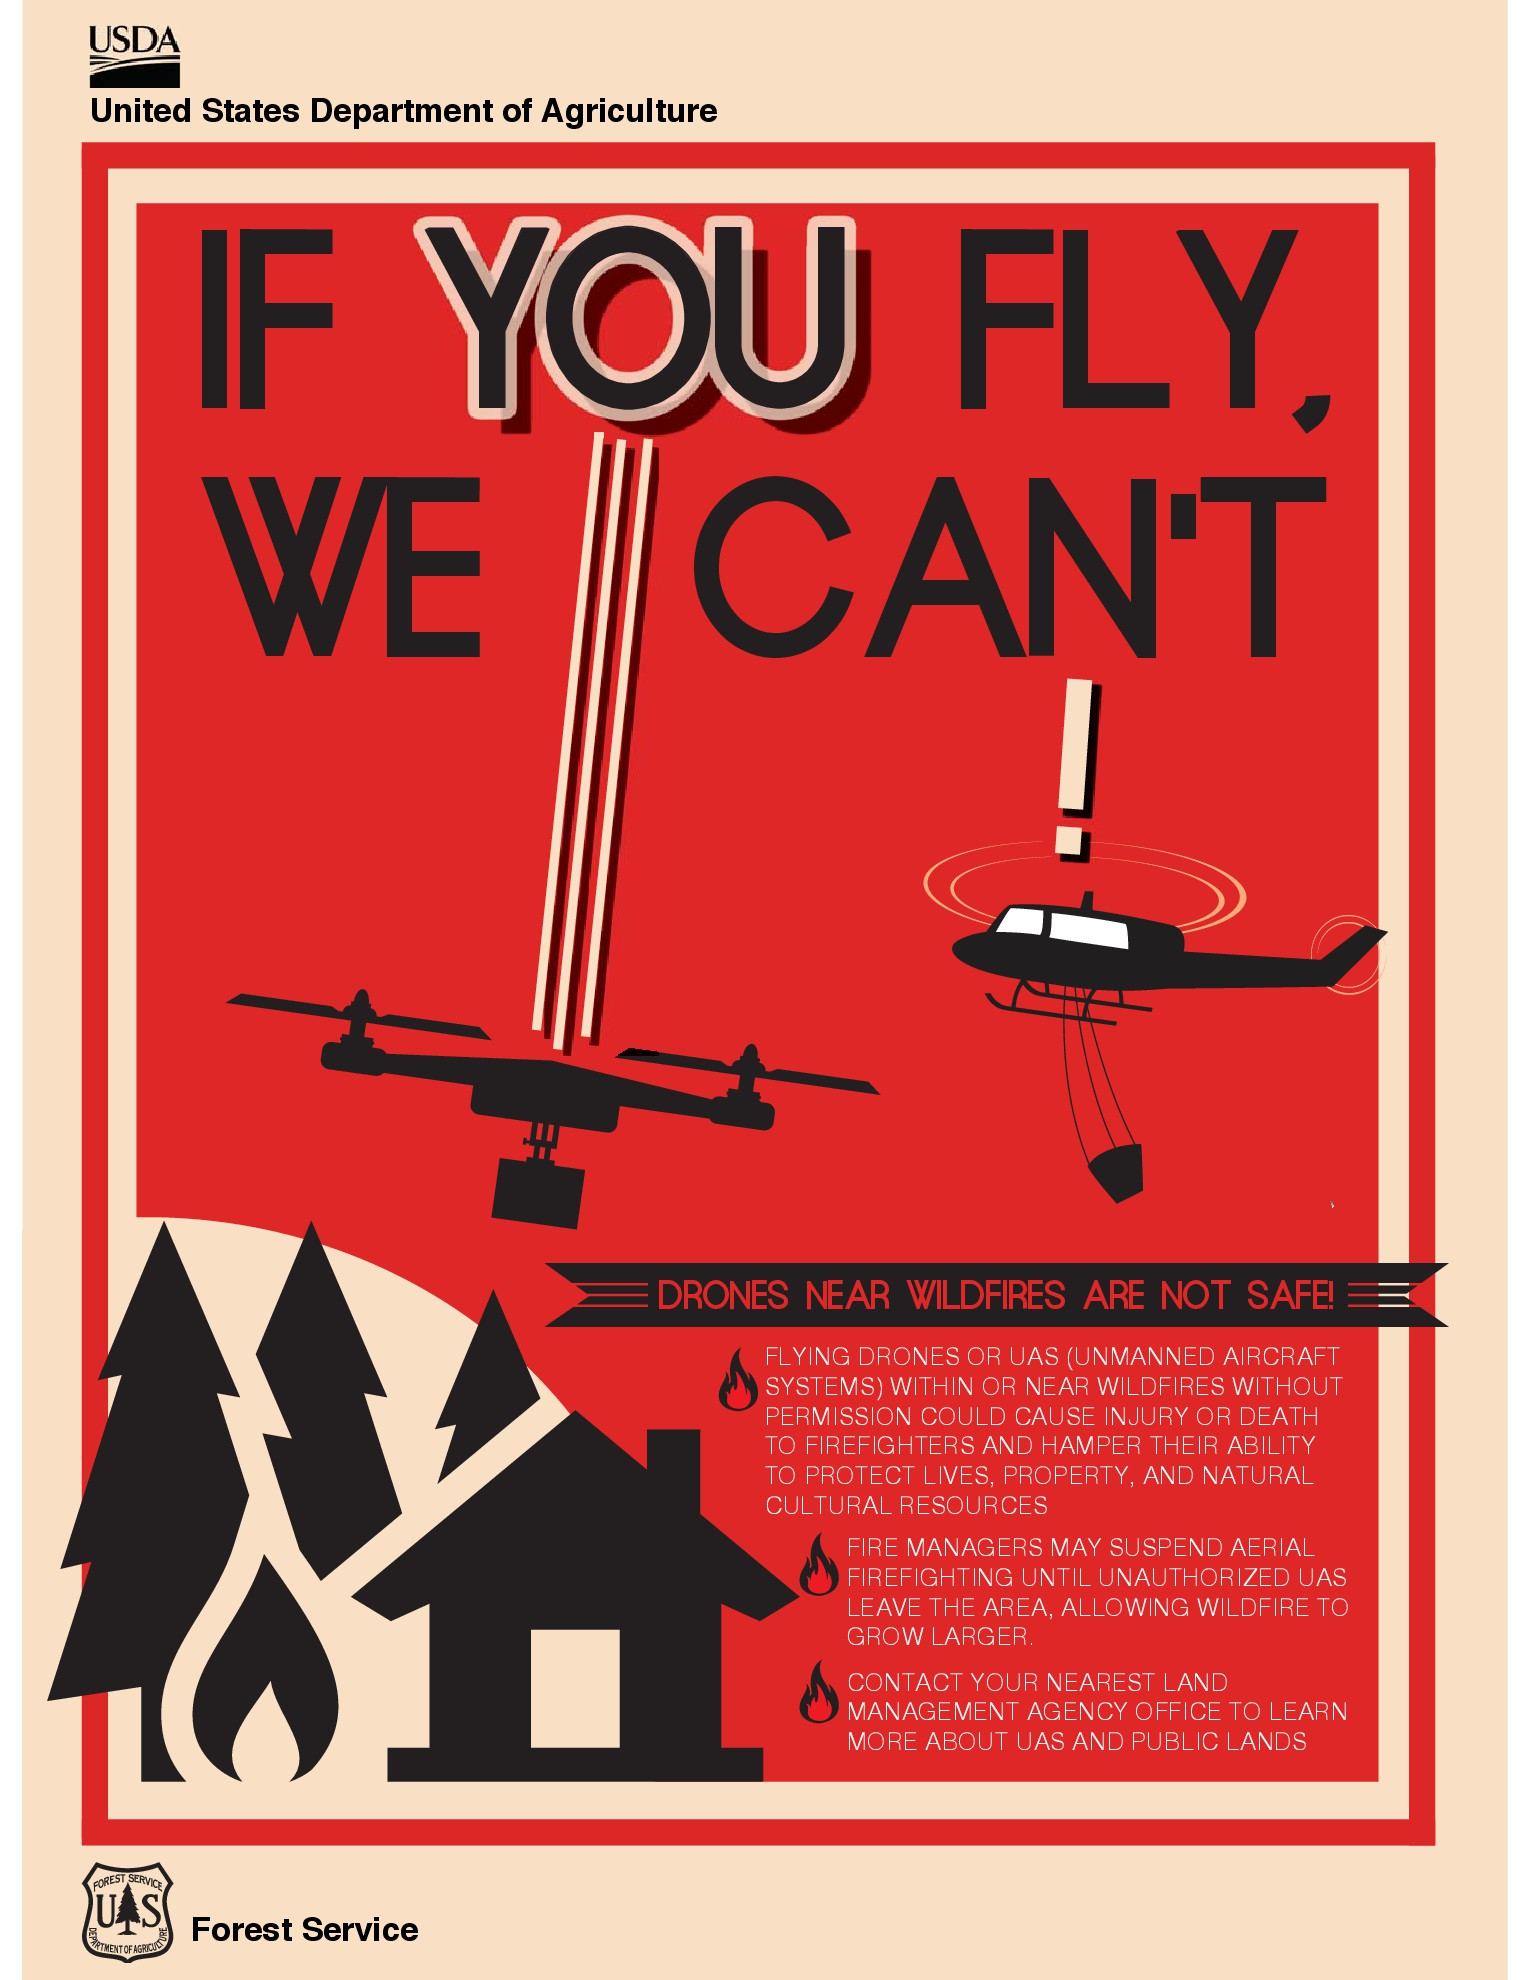 A drone spotted over the Aspen and Pine Canyon fires have grounded all aerial operations | Image courtesy of National Forest Service, St. George News